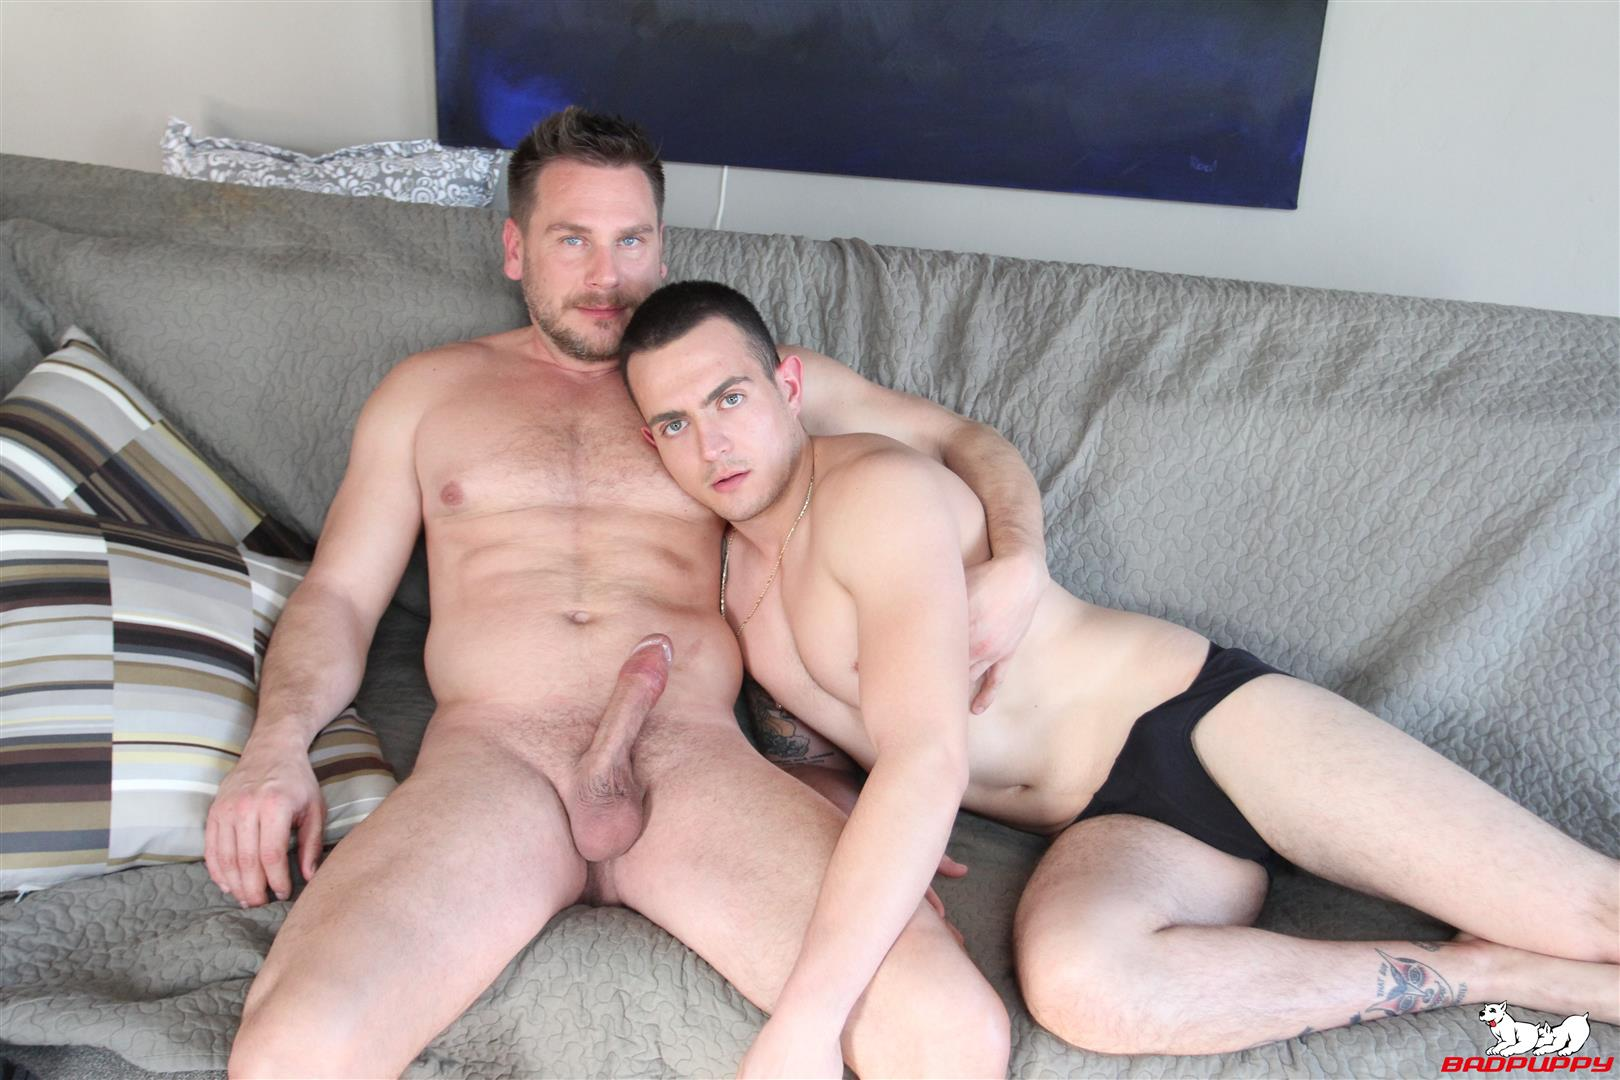 Badpuppy-Hans-Berlin-and-Ryan-Kroger-Big-Dick-Daddy-Barebacking-Boy-05 Big Dick Daddy Hans Berlin Barebacking Ryan Kroger